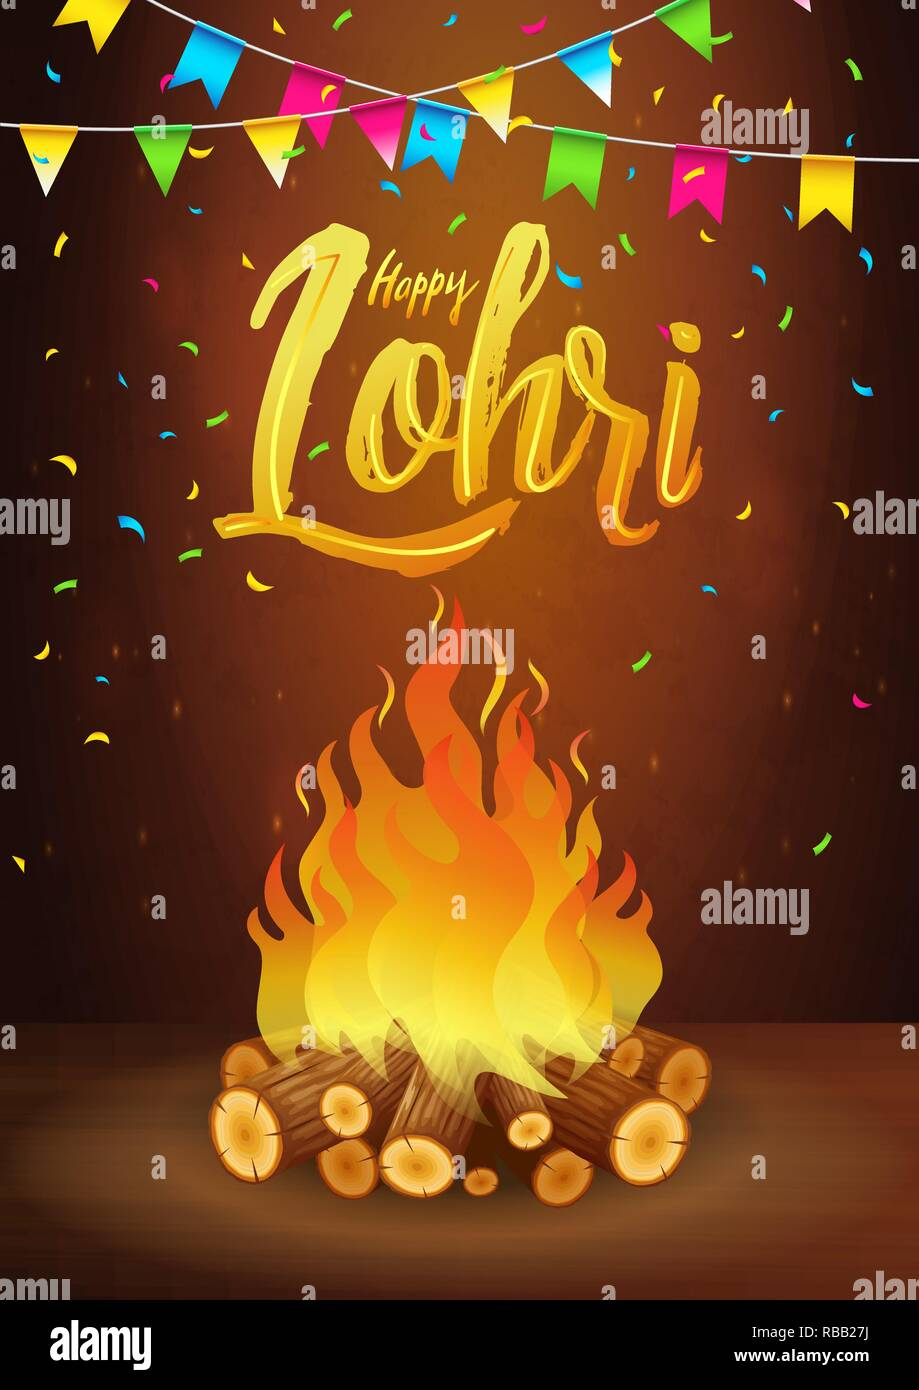 Happy Lohri banner, greeting card, Punjabi festival celebration - Stock Vector